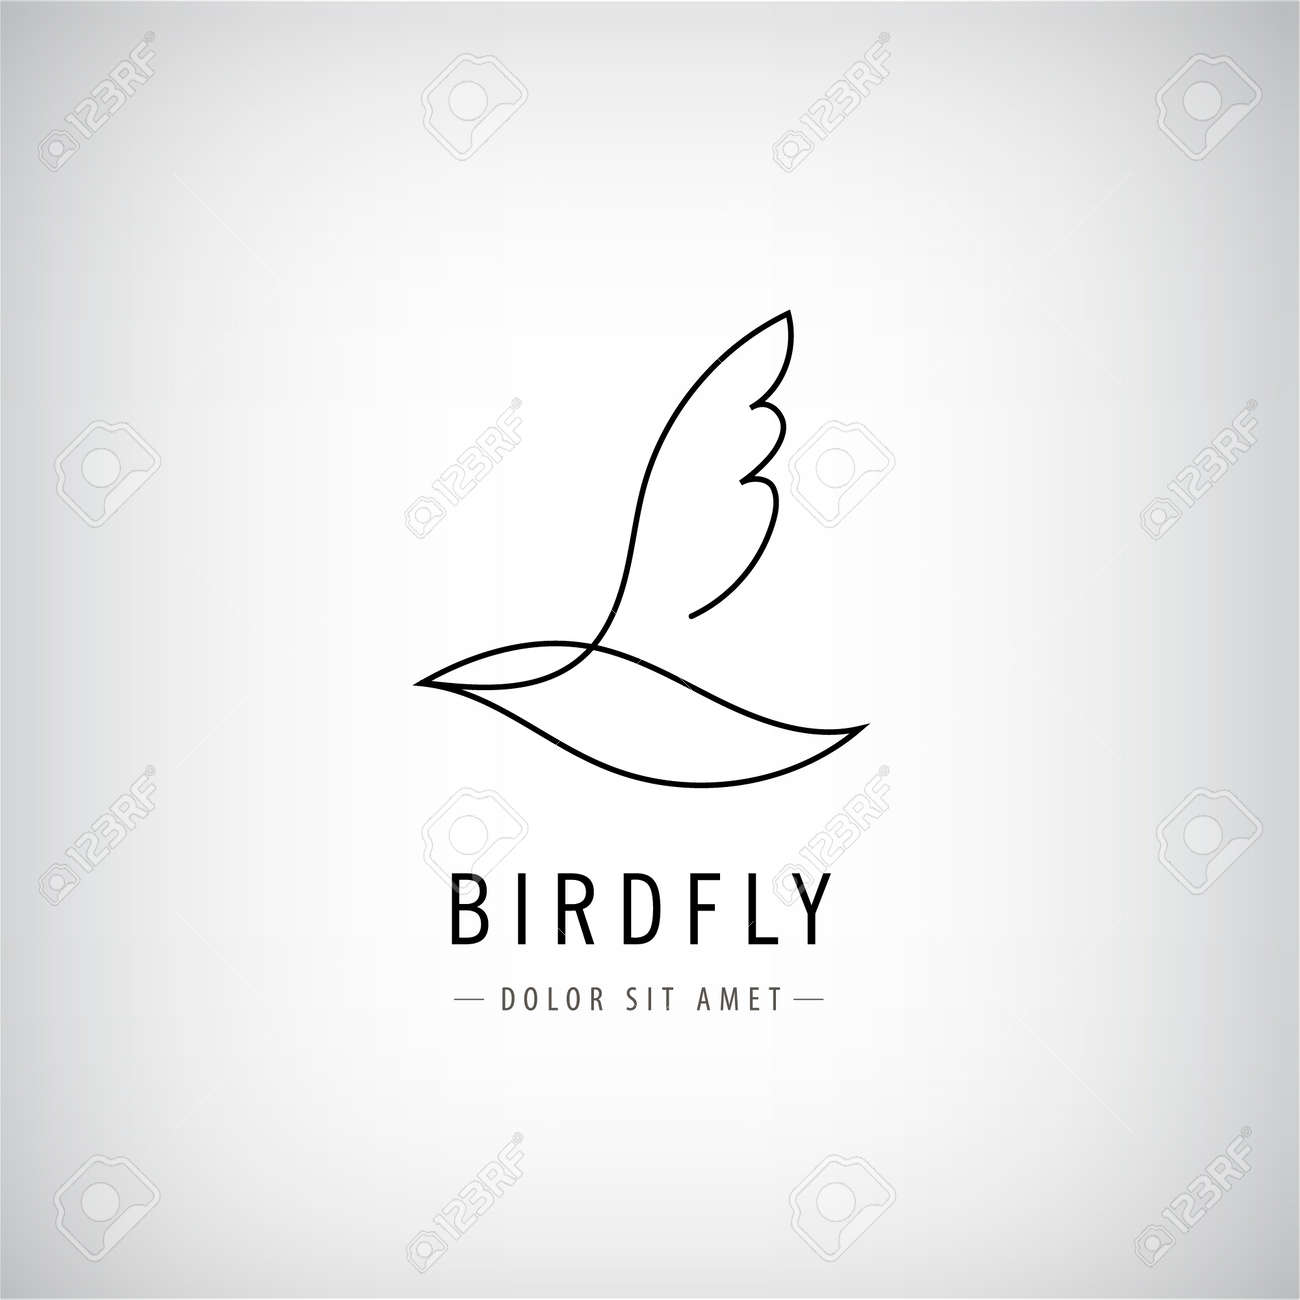 Vector one line bird logo, flying silhouette, continuous monoline concept, abstract icon, sign isolated. Use for print, brand, tatoo, art - 170567465